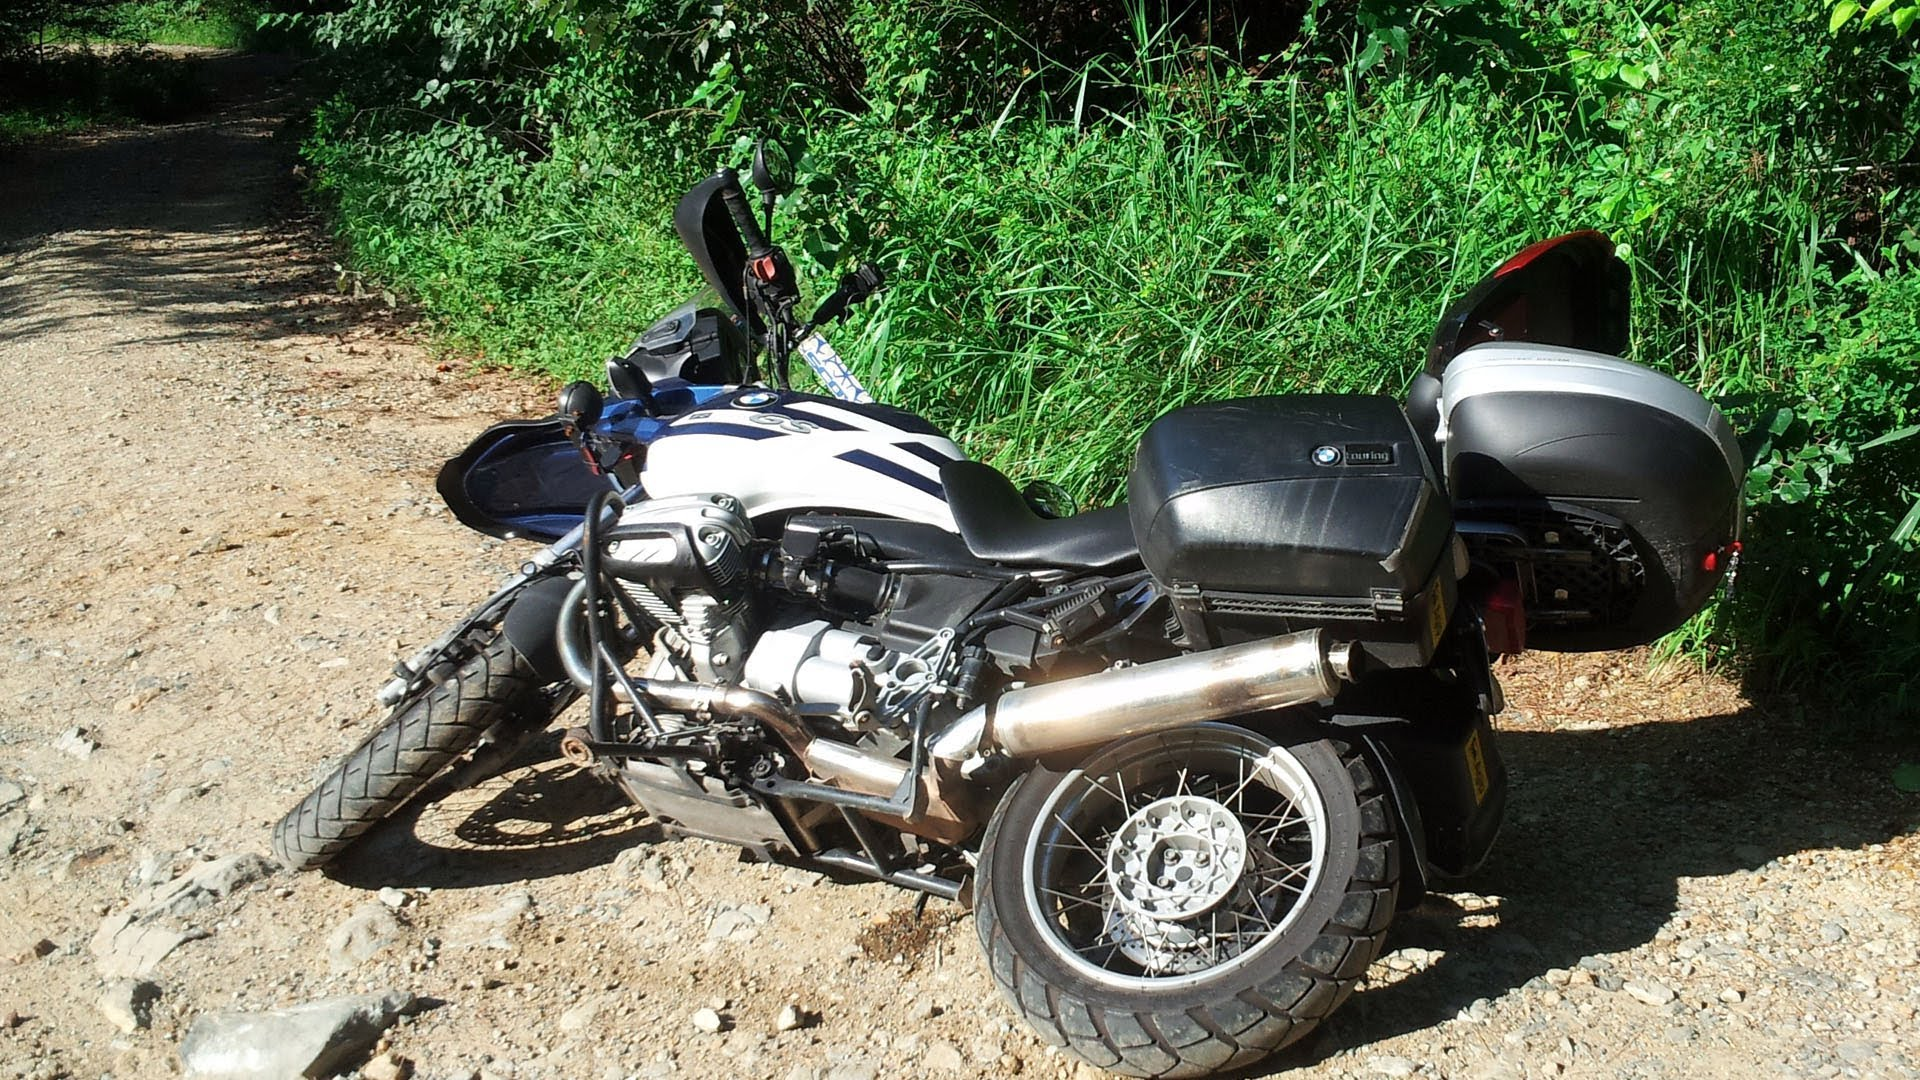 BMW R1150GS Adventure 2001 images #6947